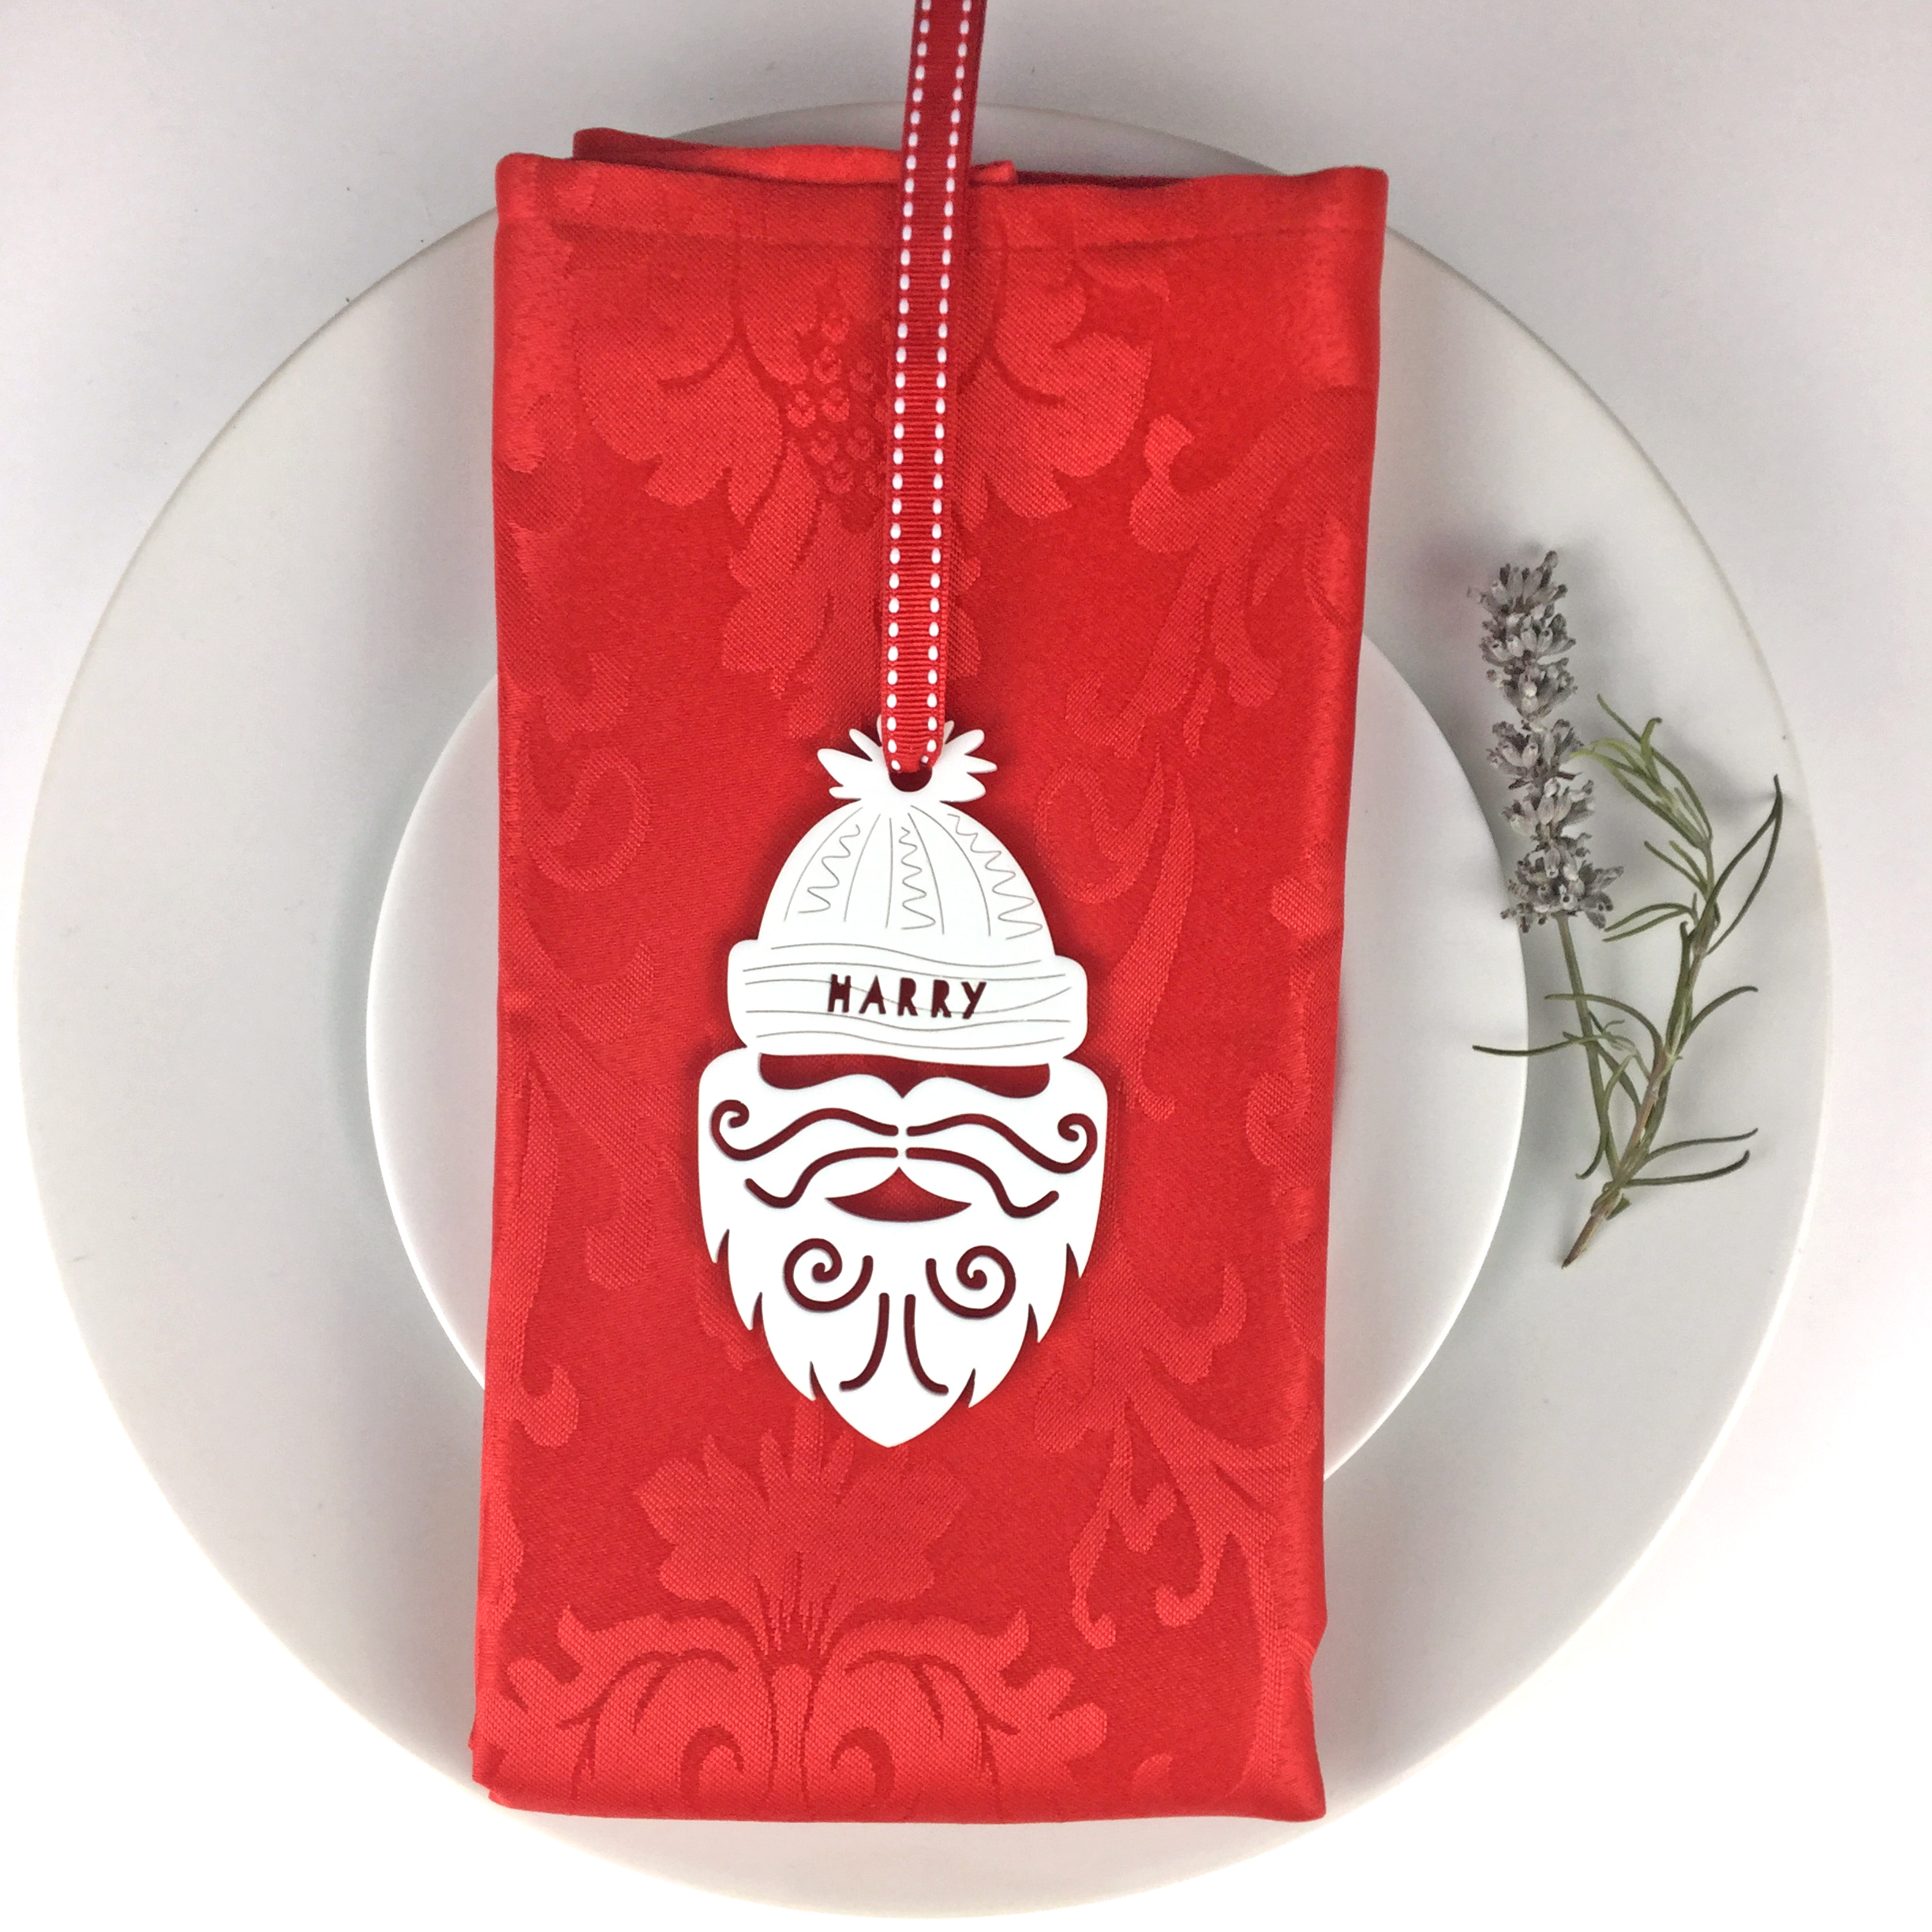 051e16a7847 Personalised Santa Christmas Place Settings Set of 4 - Yumbles.com